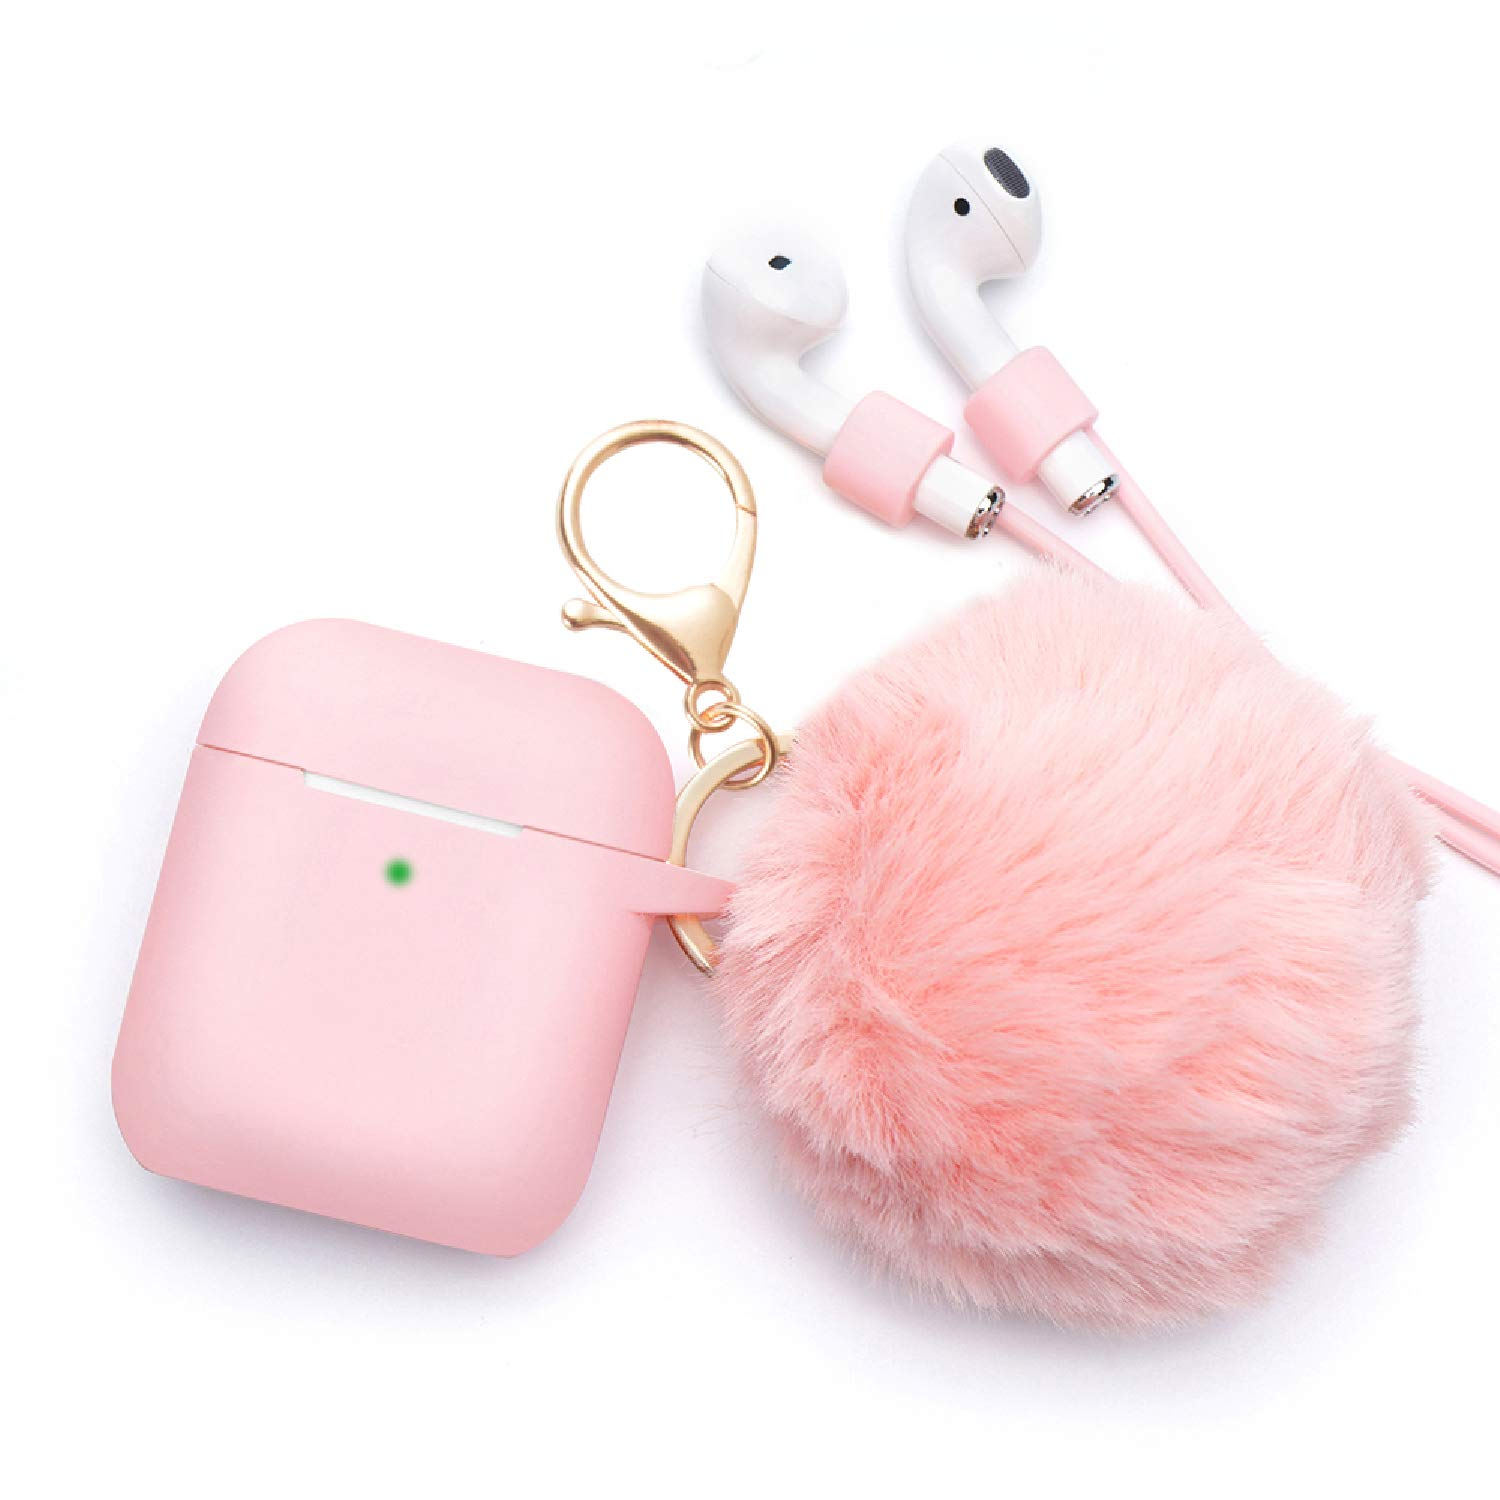 BLUEWIND Airpods Case - BlUEWIND Drop Proof Air Pods Protective Case Cover Silicone Skin for Apple Airpods 2 & 1 Charging Case, Cute Fur Ball Airpod Keychain/Strap, Pink